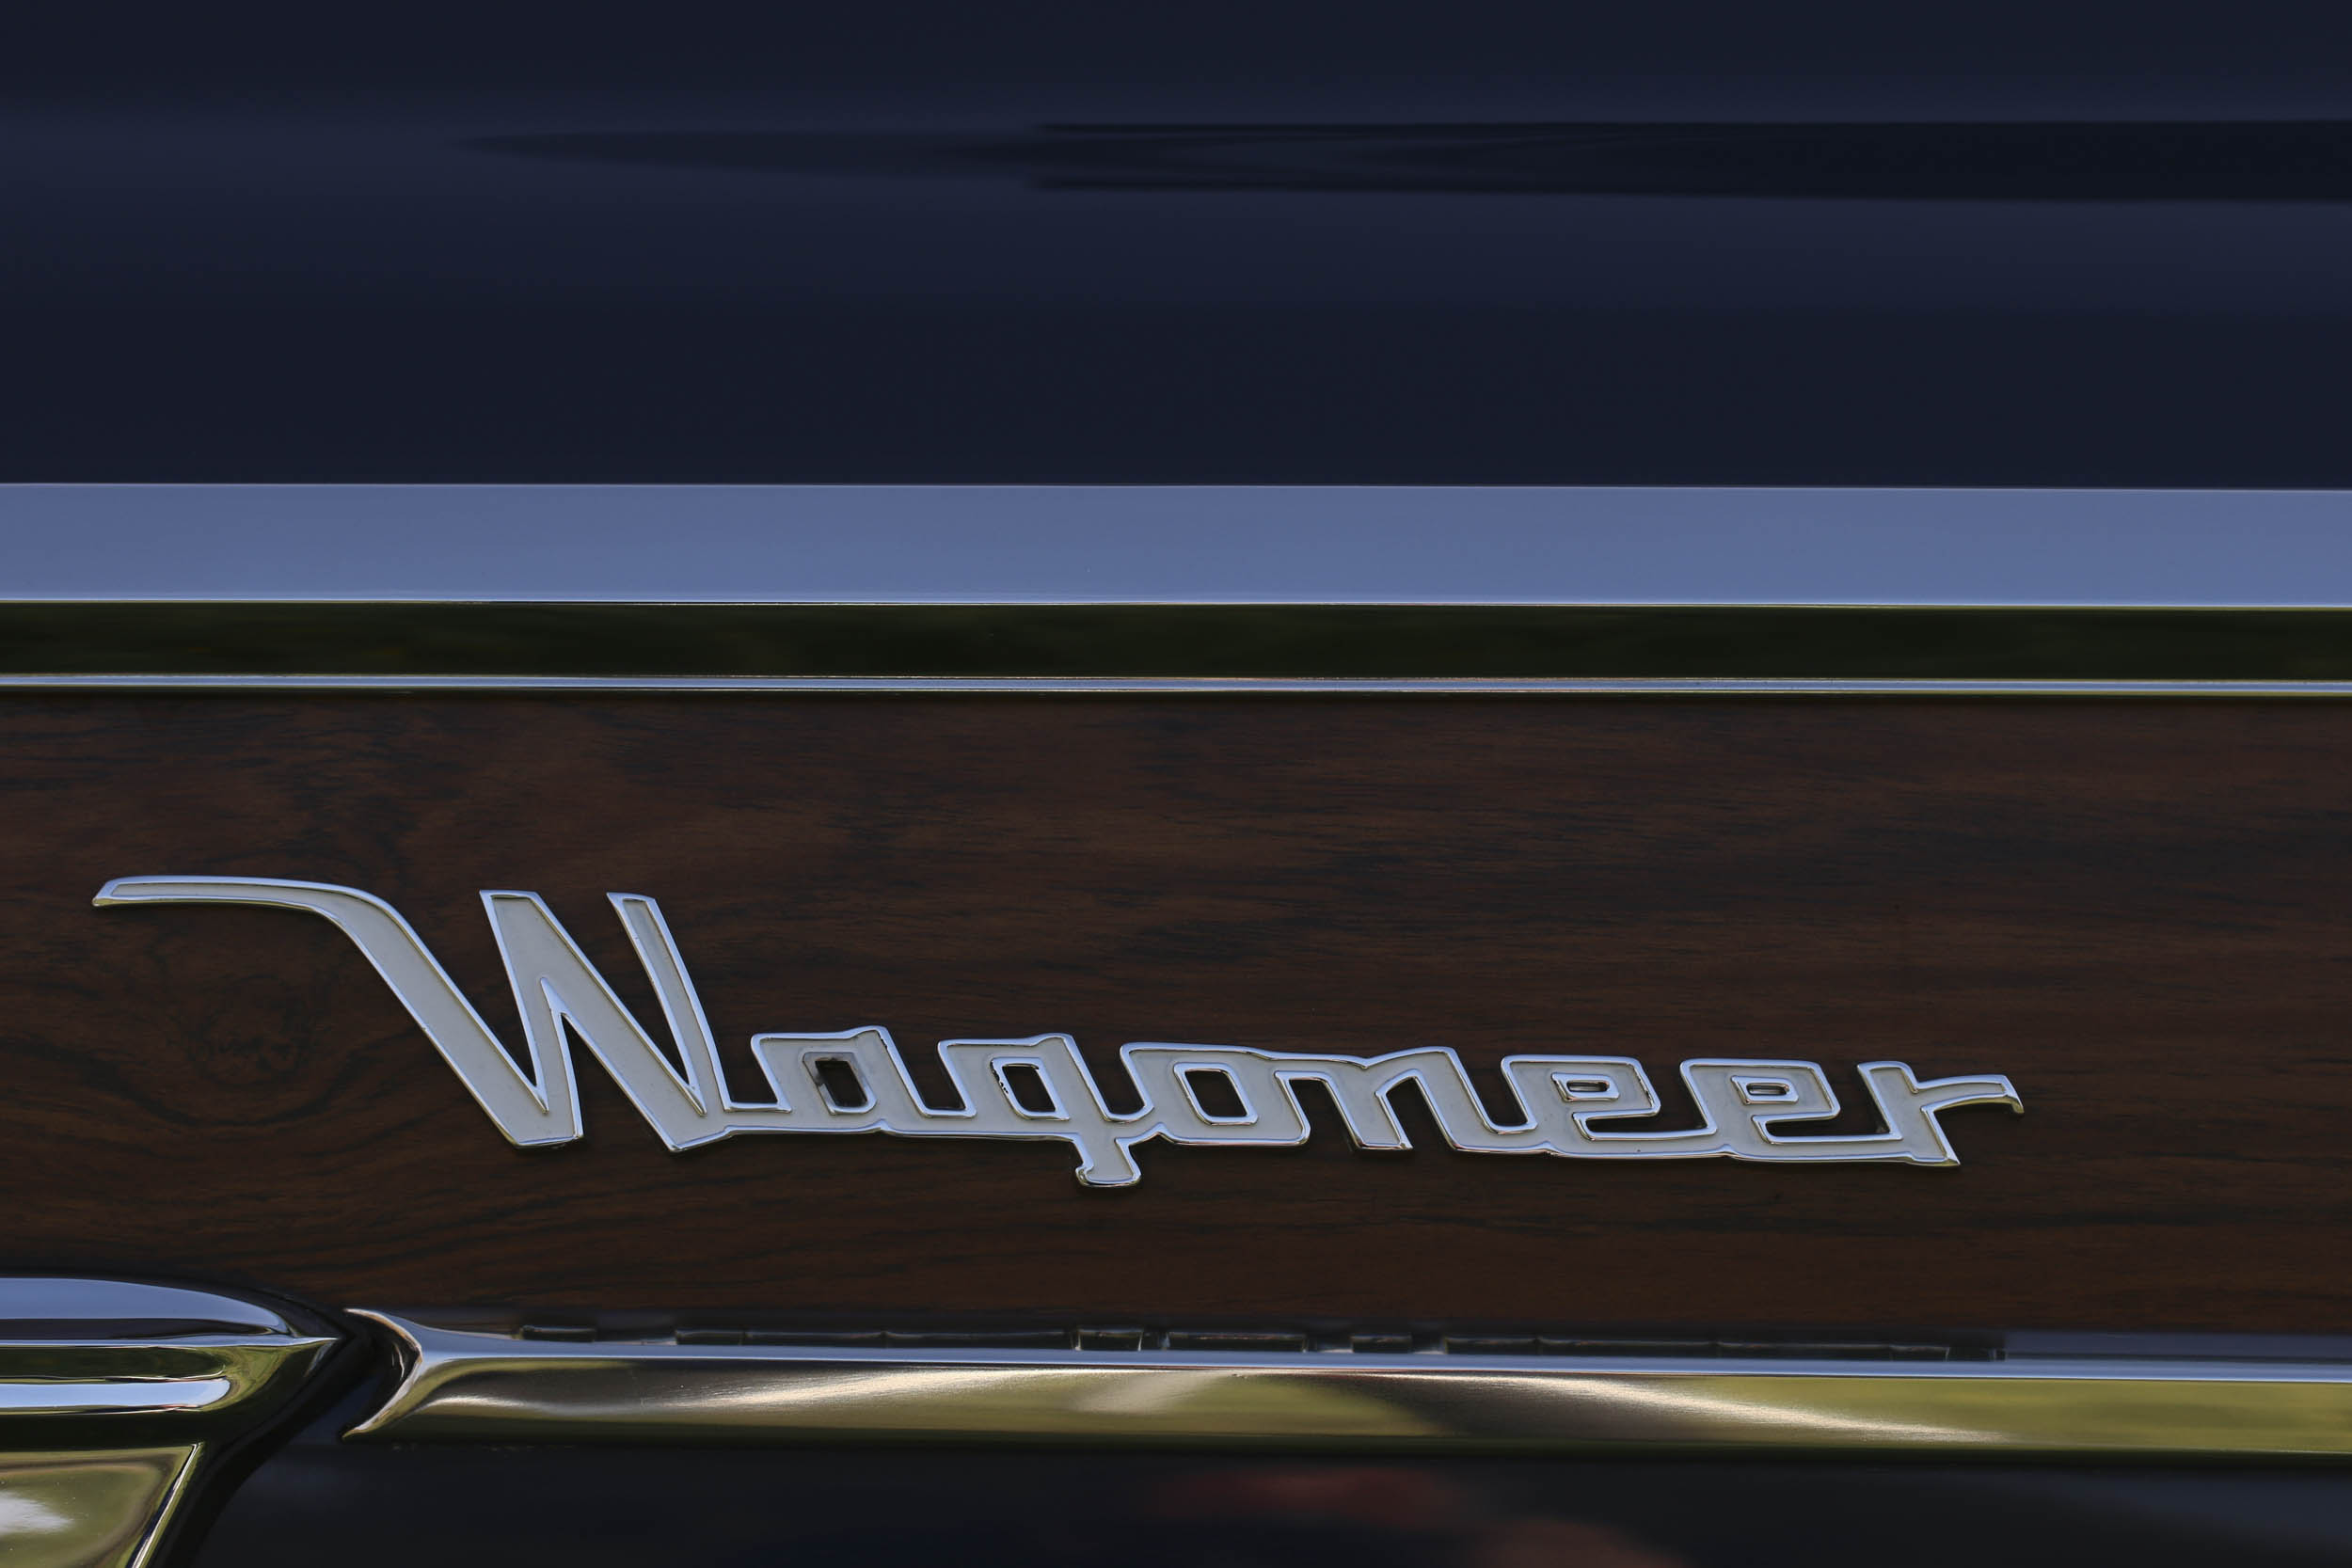 ICON Wagoneer badge